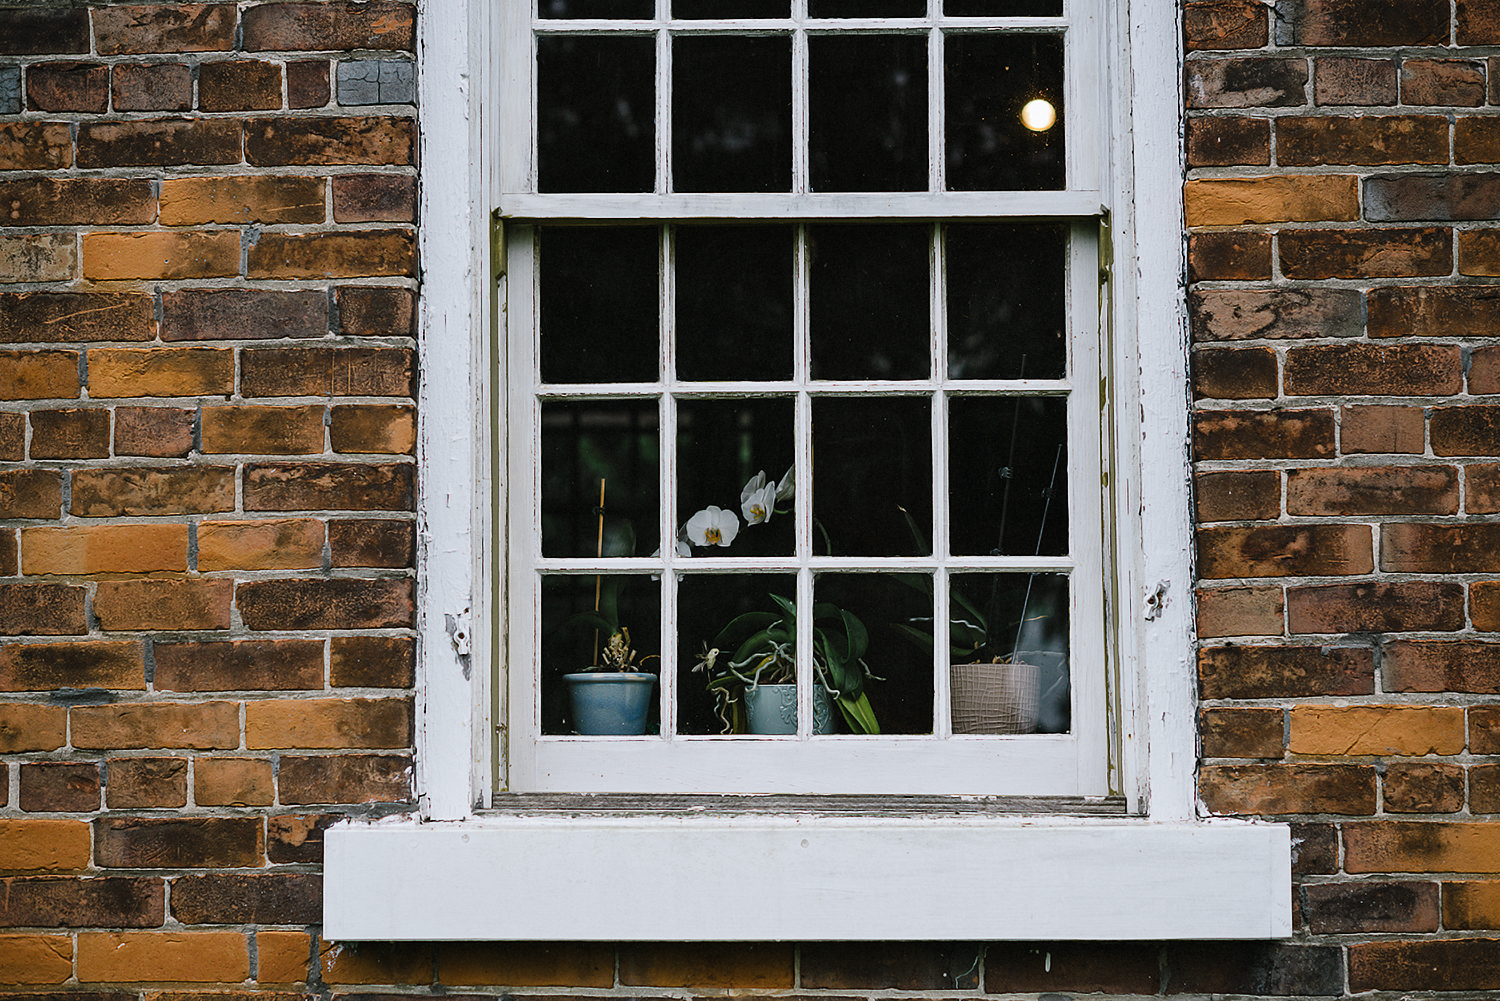 Best-Moody-Vintage-Small-Town-Chapel-Wedding-Toronto-Ontario_-Bed-and-Breakfast-Old-Rustic-Home-Window-Sill.jpg